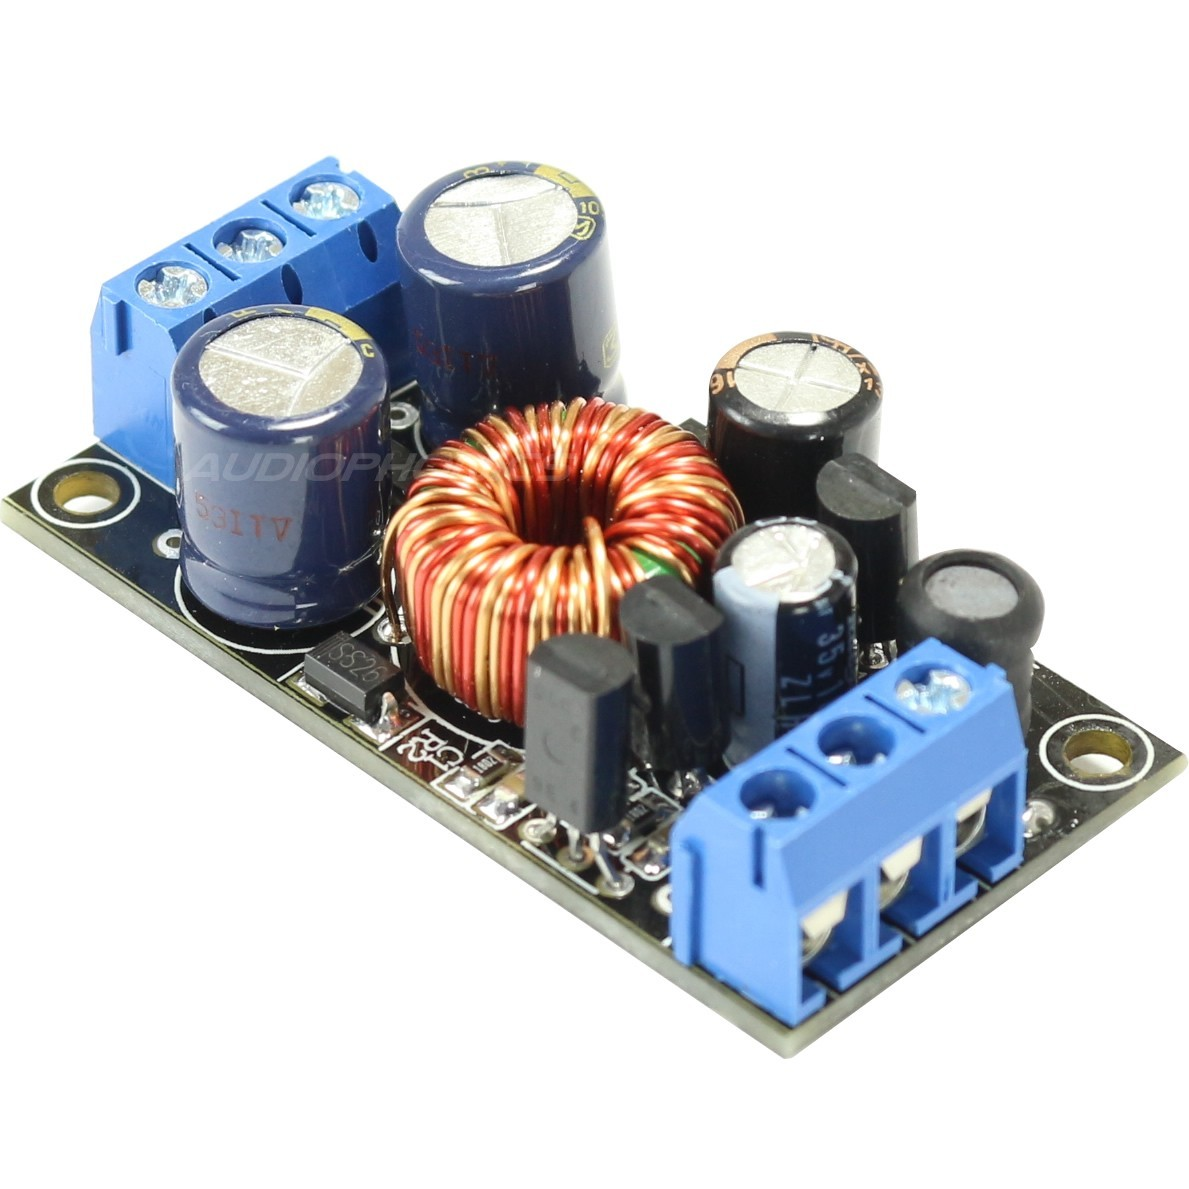 Dc Converter Audiophonics Circuit Power Additionally 48v To 12v In Convertor Module Ac Supply